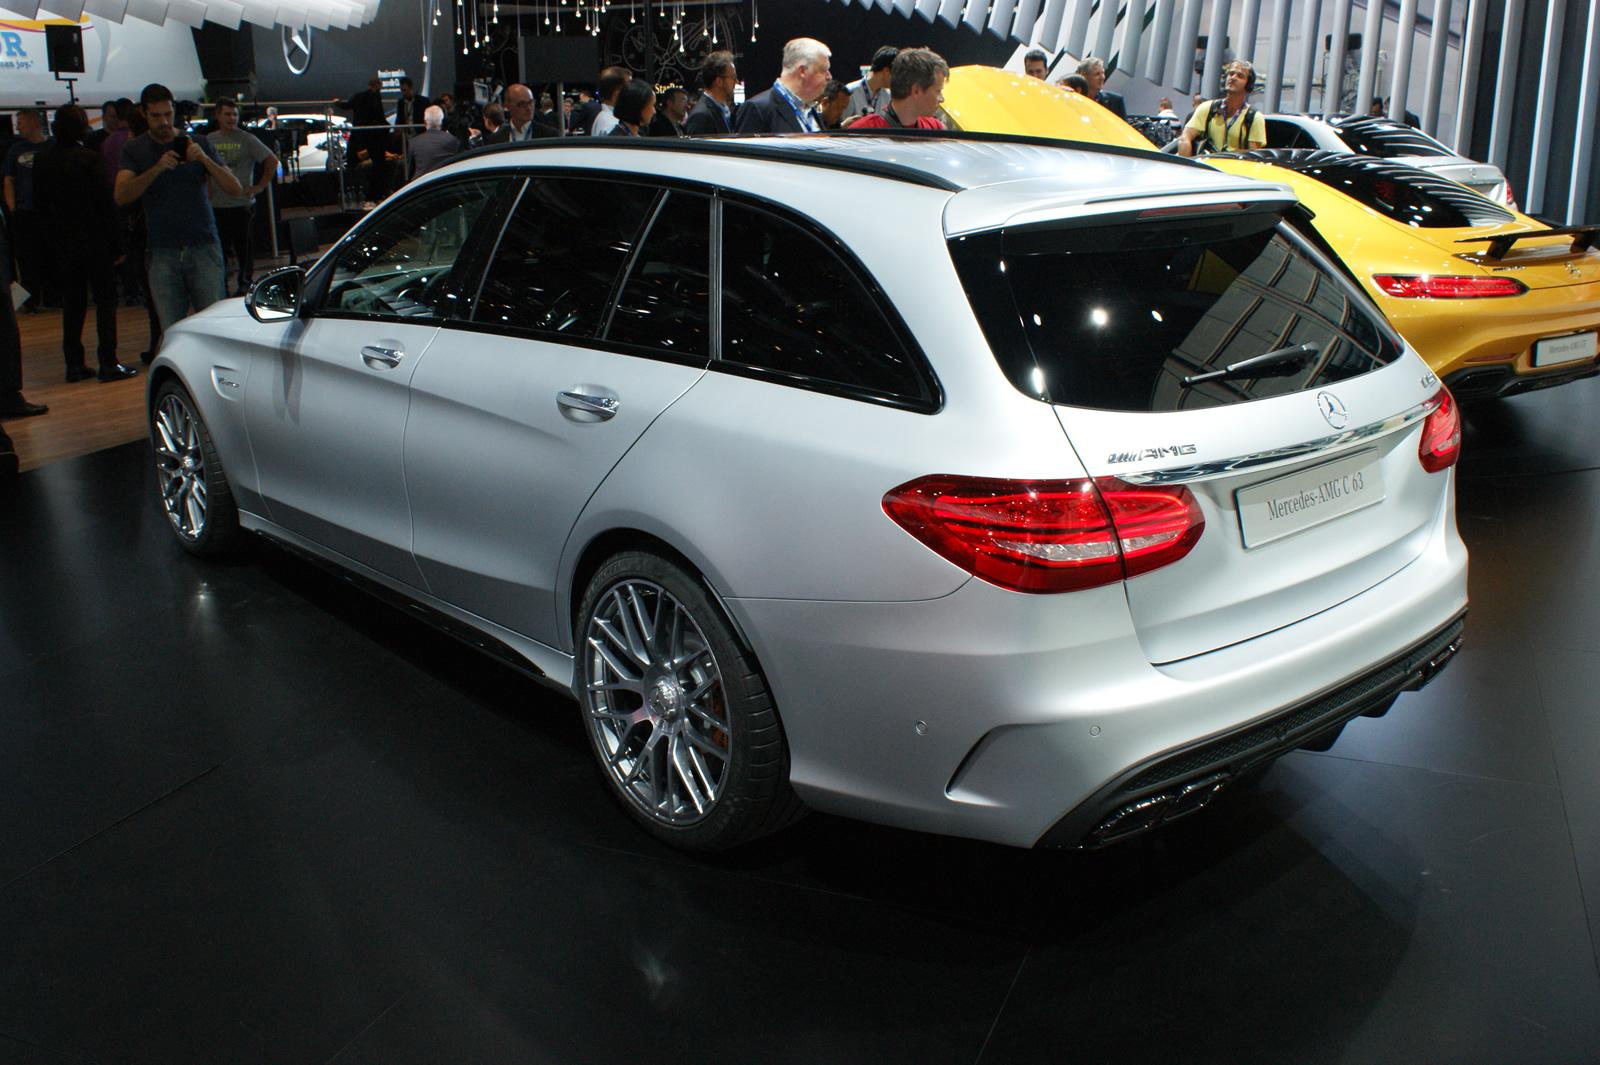 Mercedes benz c63 amg salone di parigi 2014 9 9 for Mercedes benz c63 2014